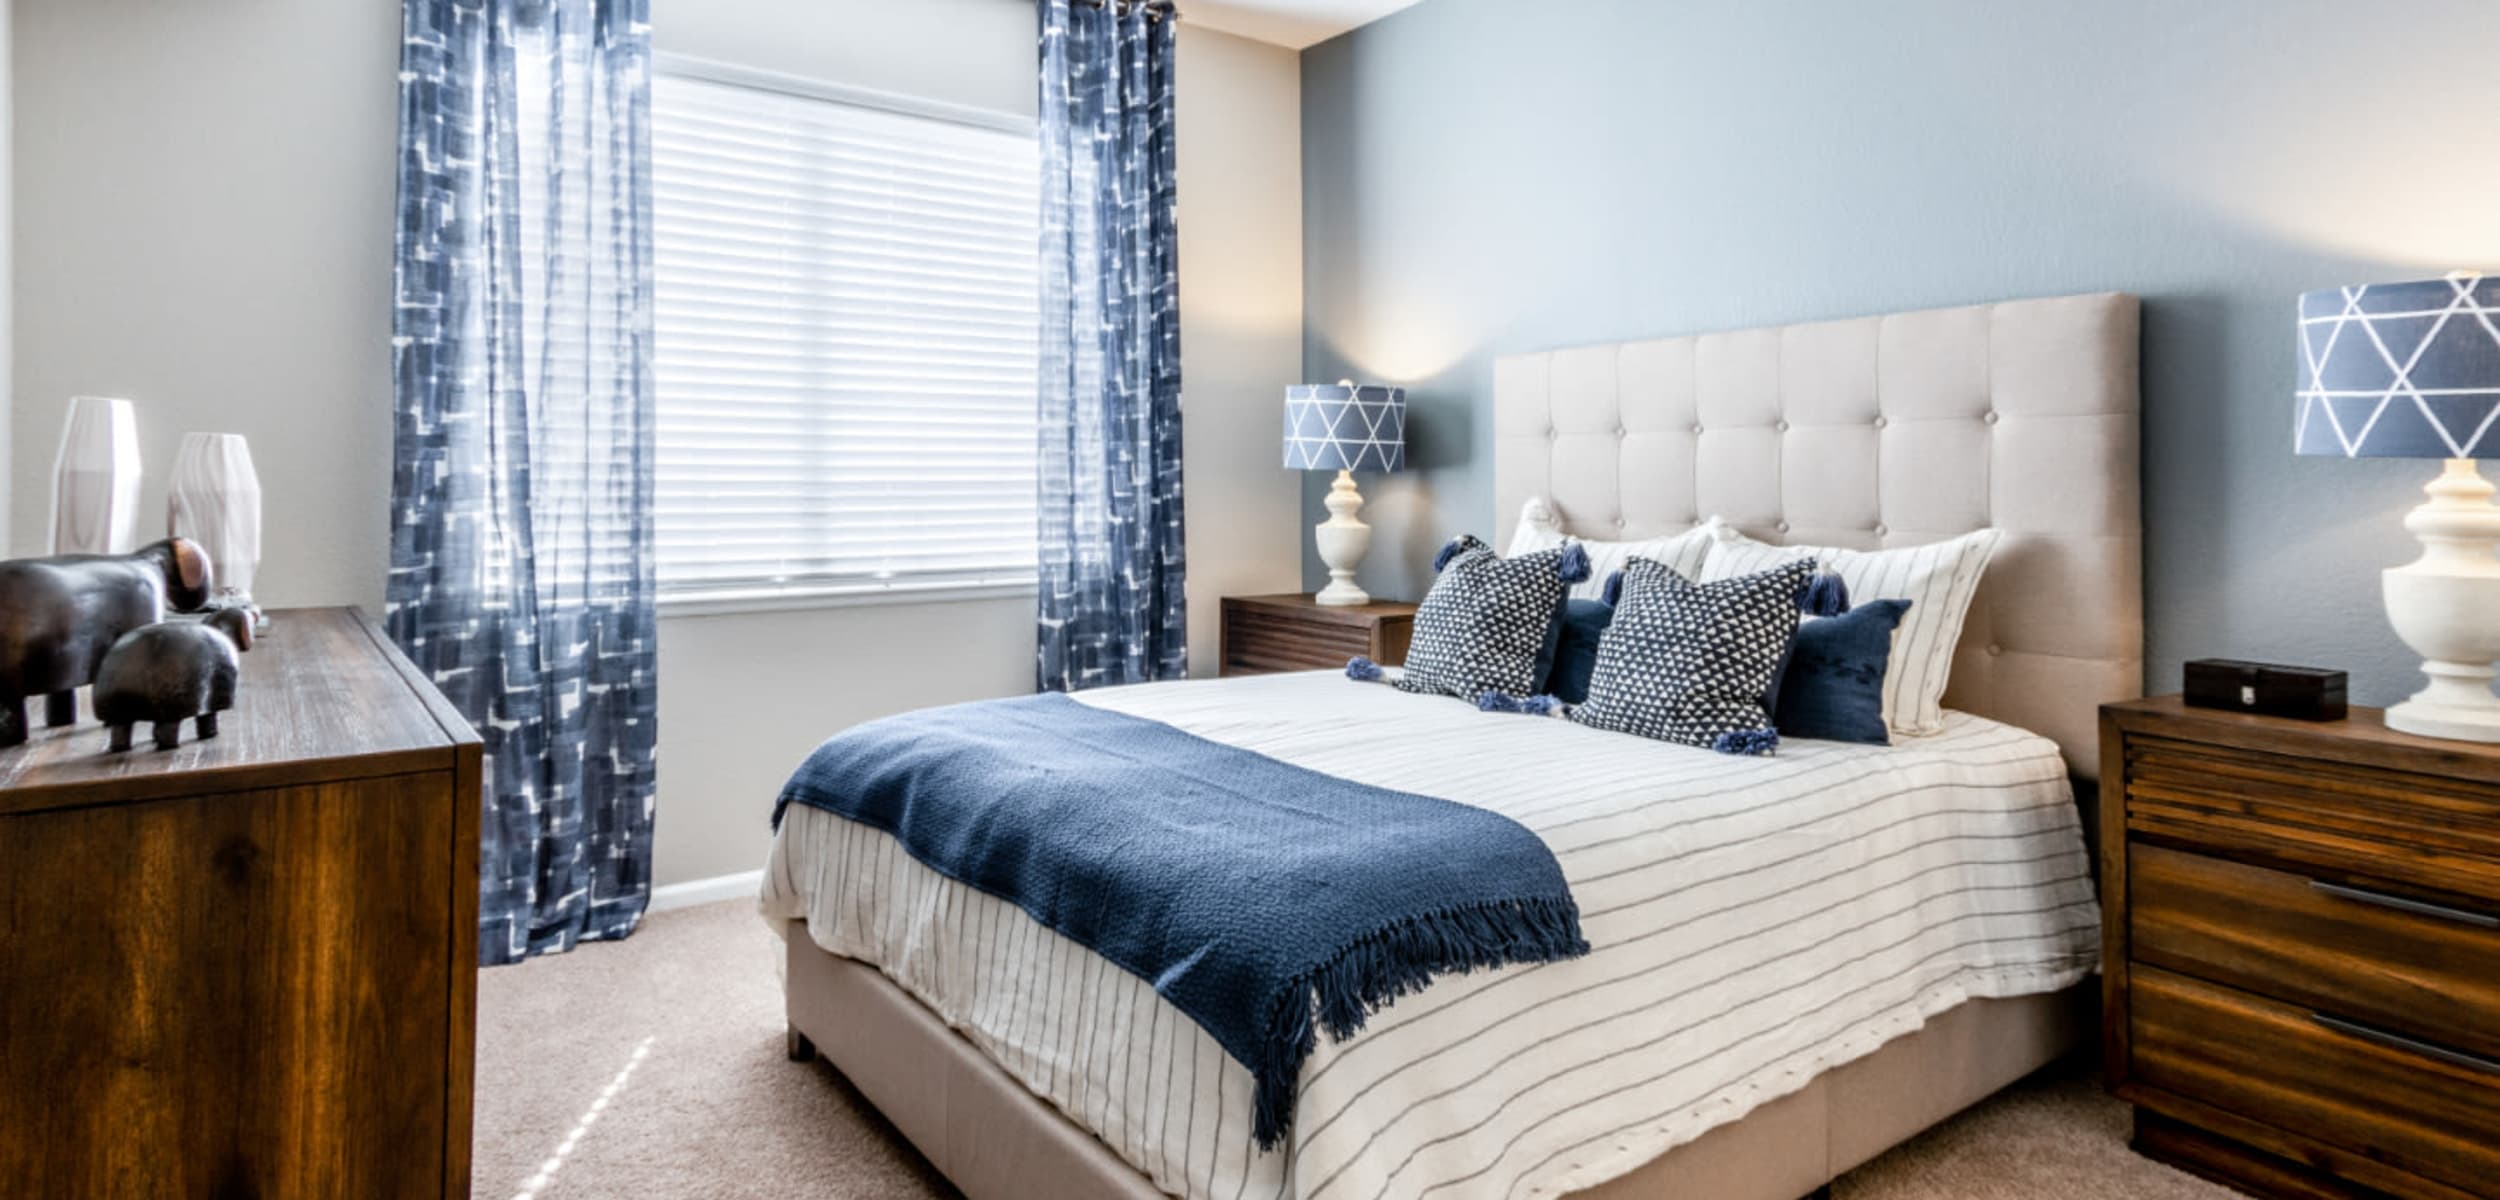 Bedroom with a large window at The Links at Plum Creek in Castle Rock, Colorado